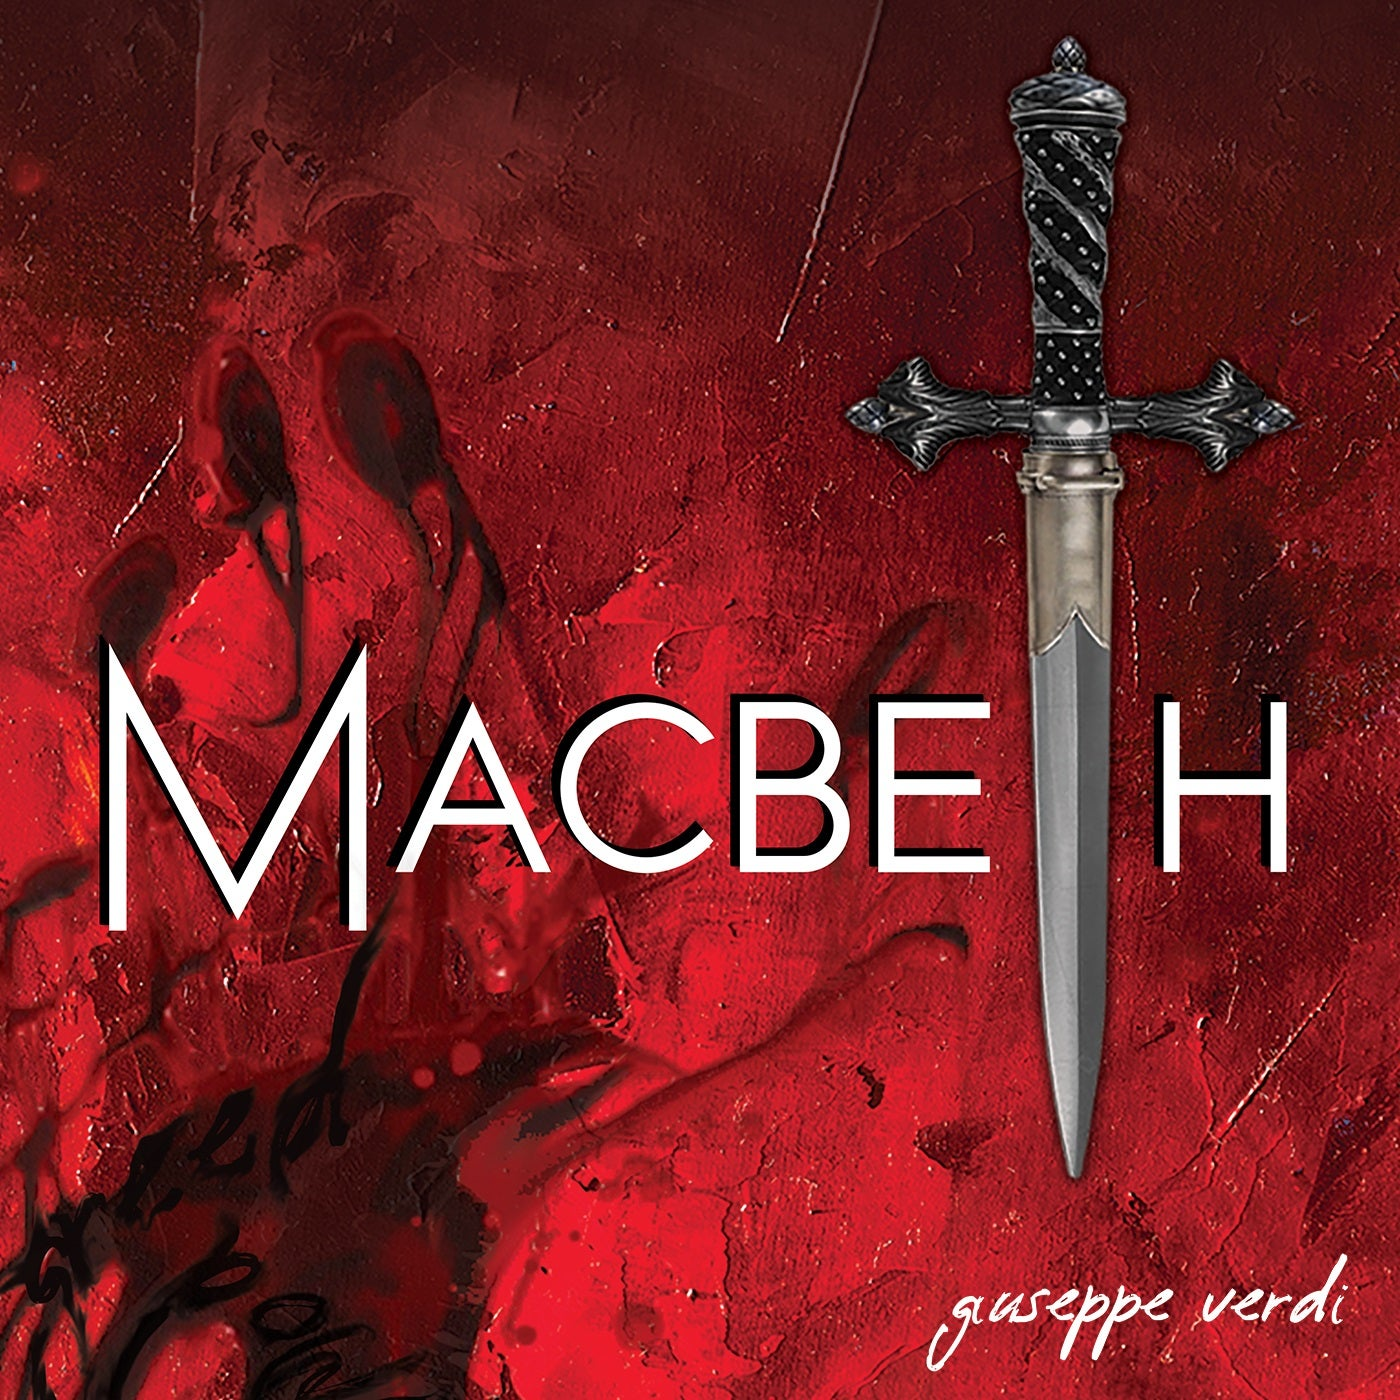 Opera Carolina: Macbeth